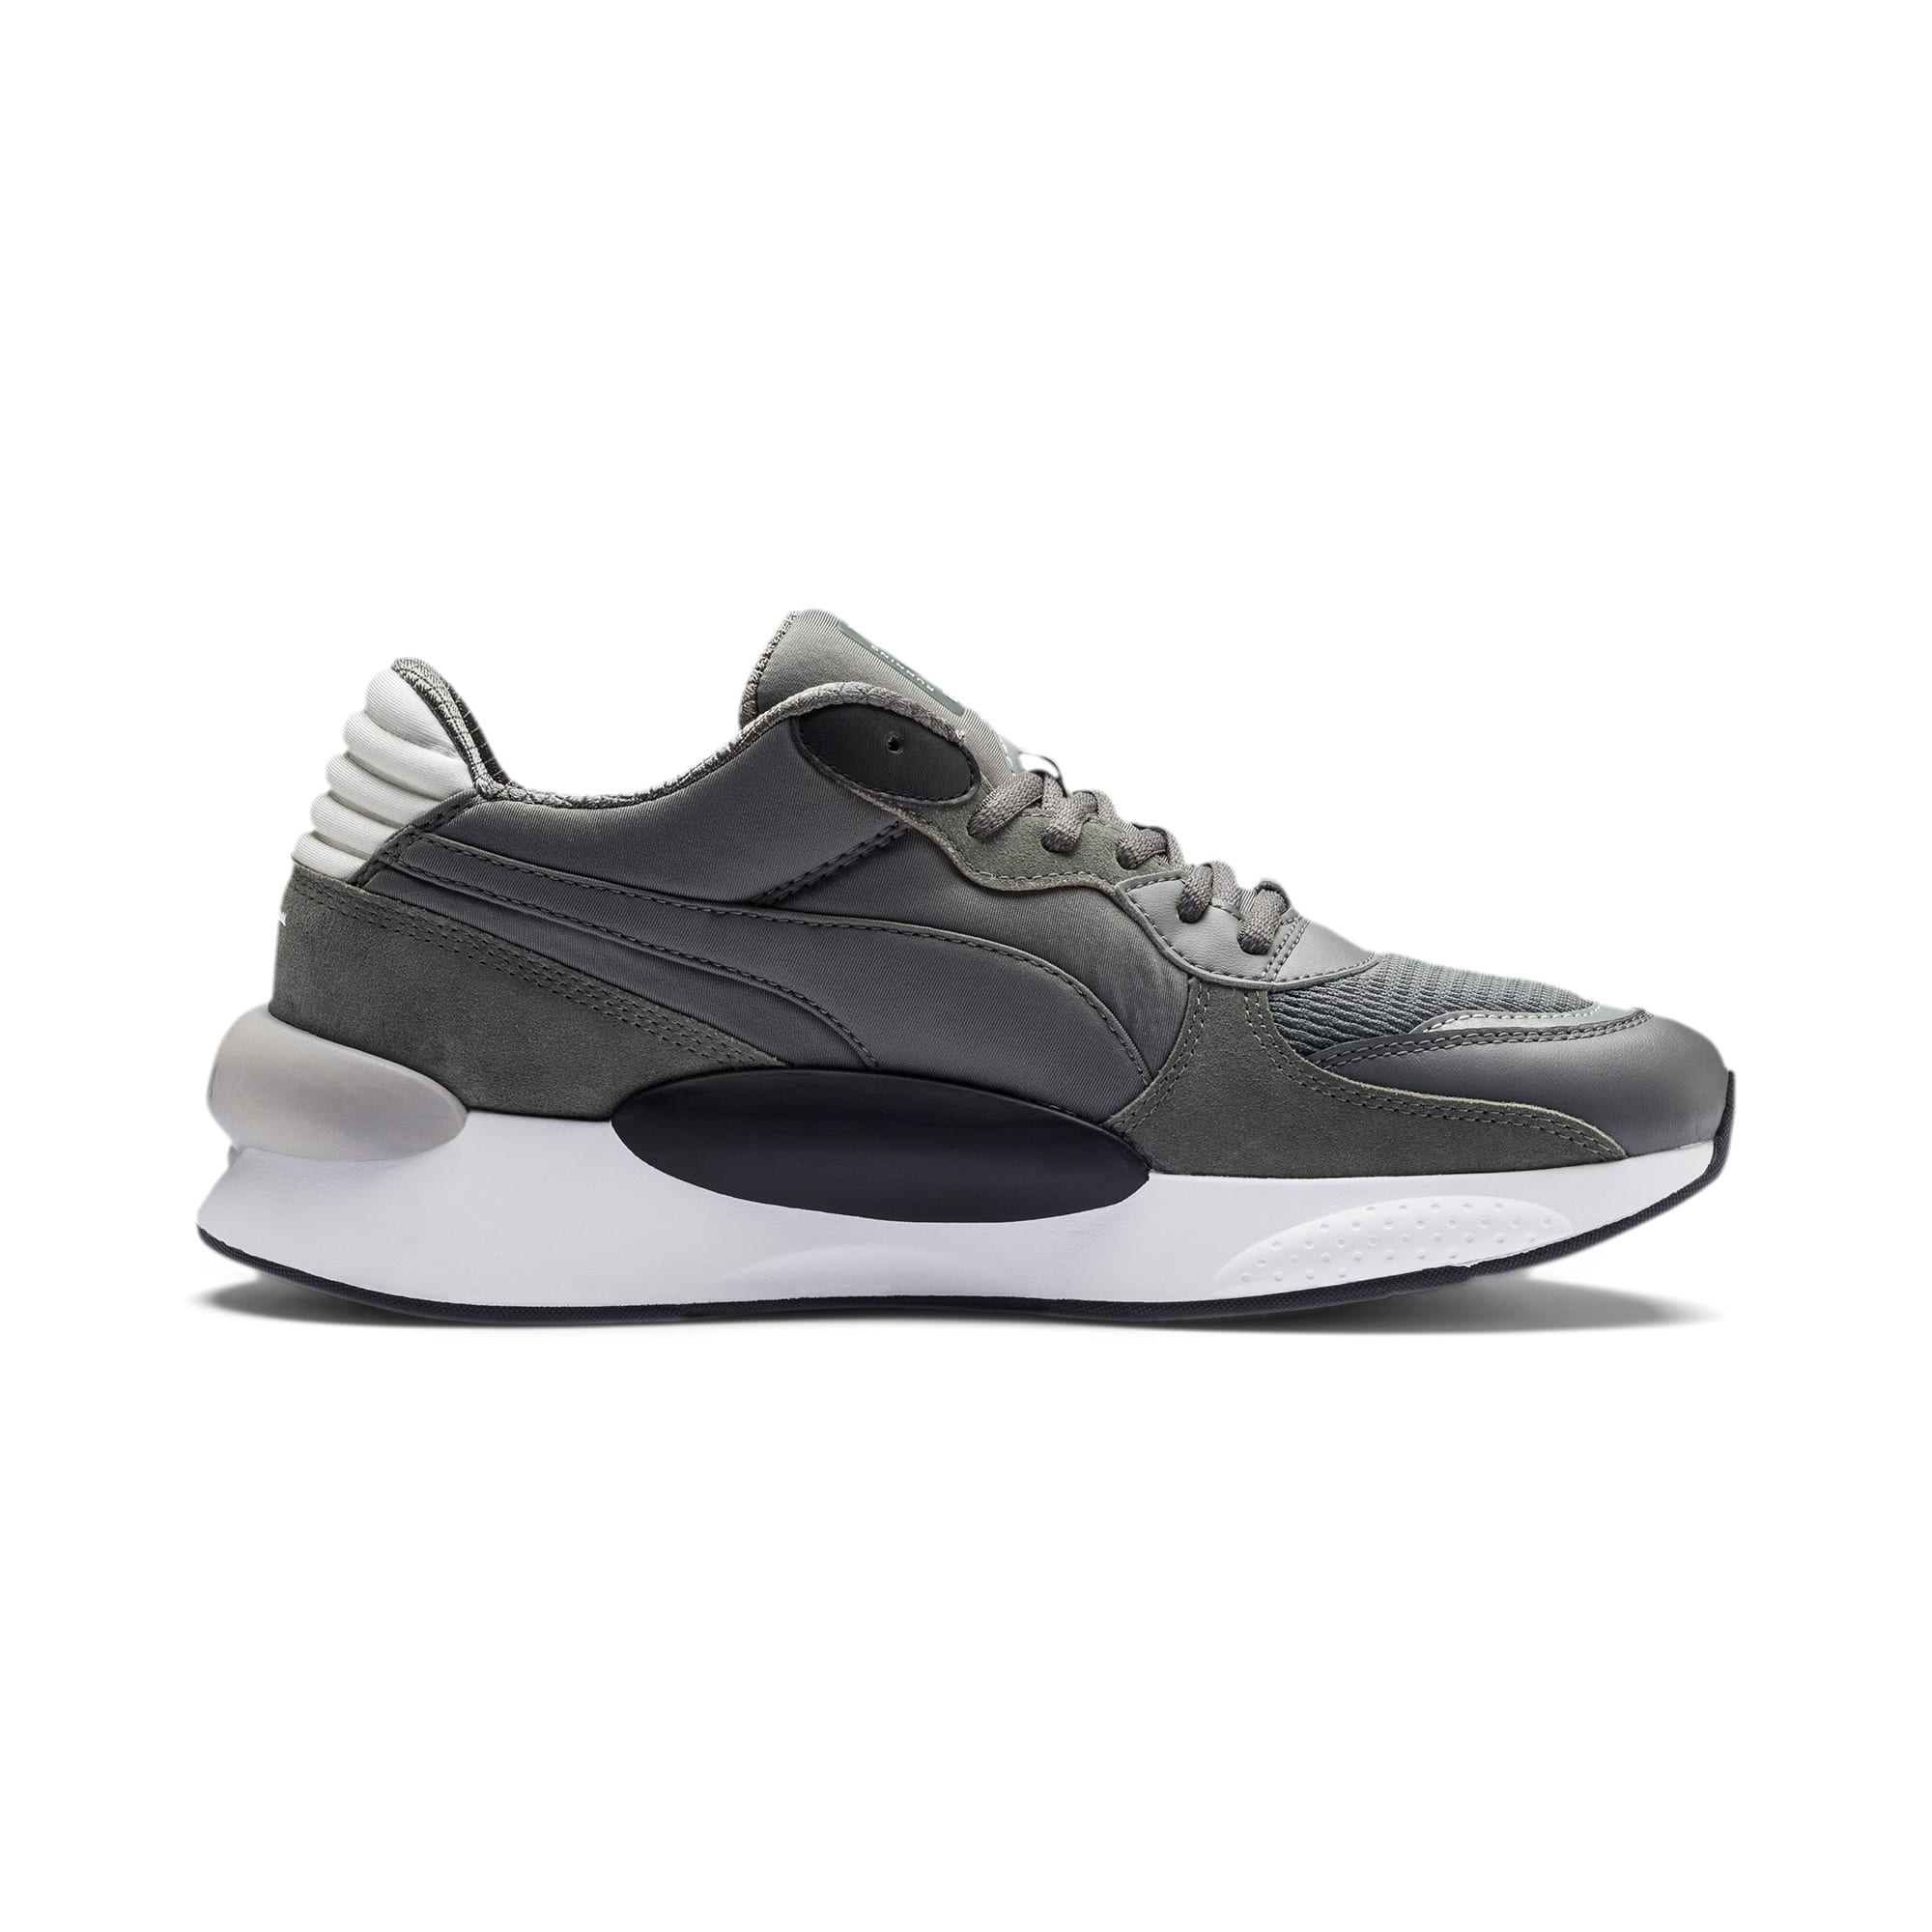 Thumbnail 5 of RS 9.8 Gravity Trainers, CASTLEROCK-Puma Black, medium